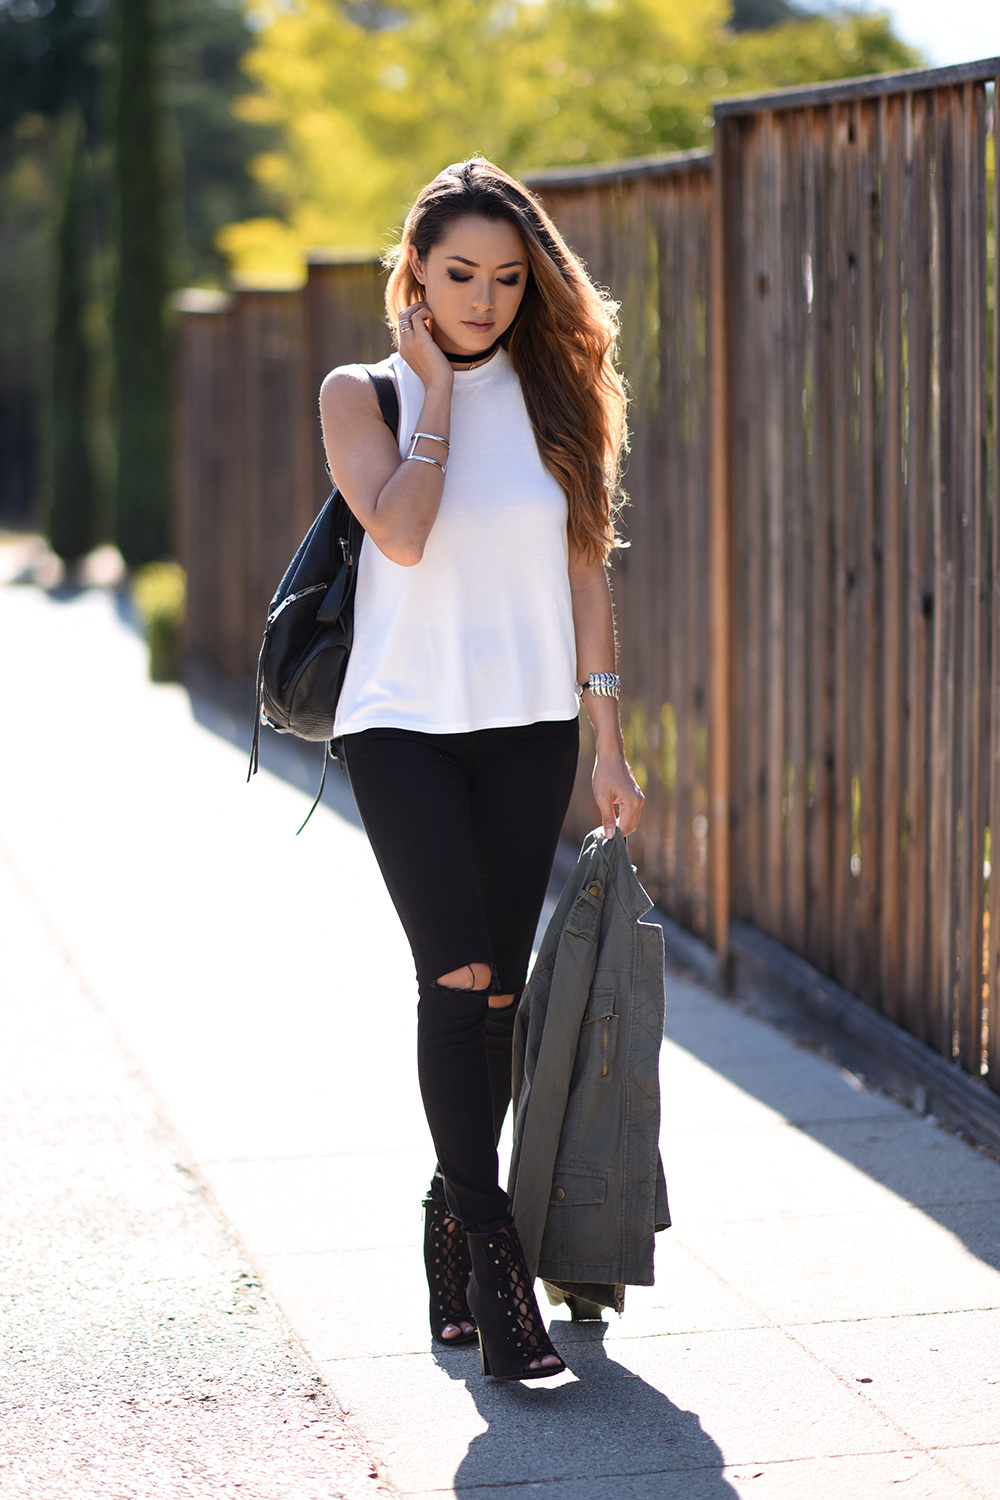 50 Incredible Outfits With Black Jeans For The Fashion-Minded